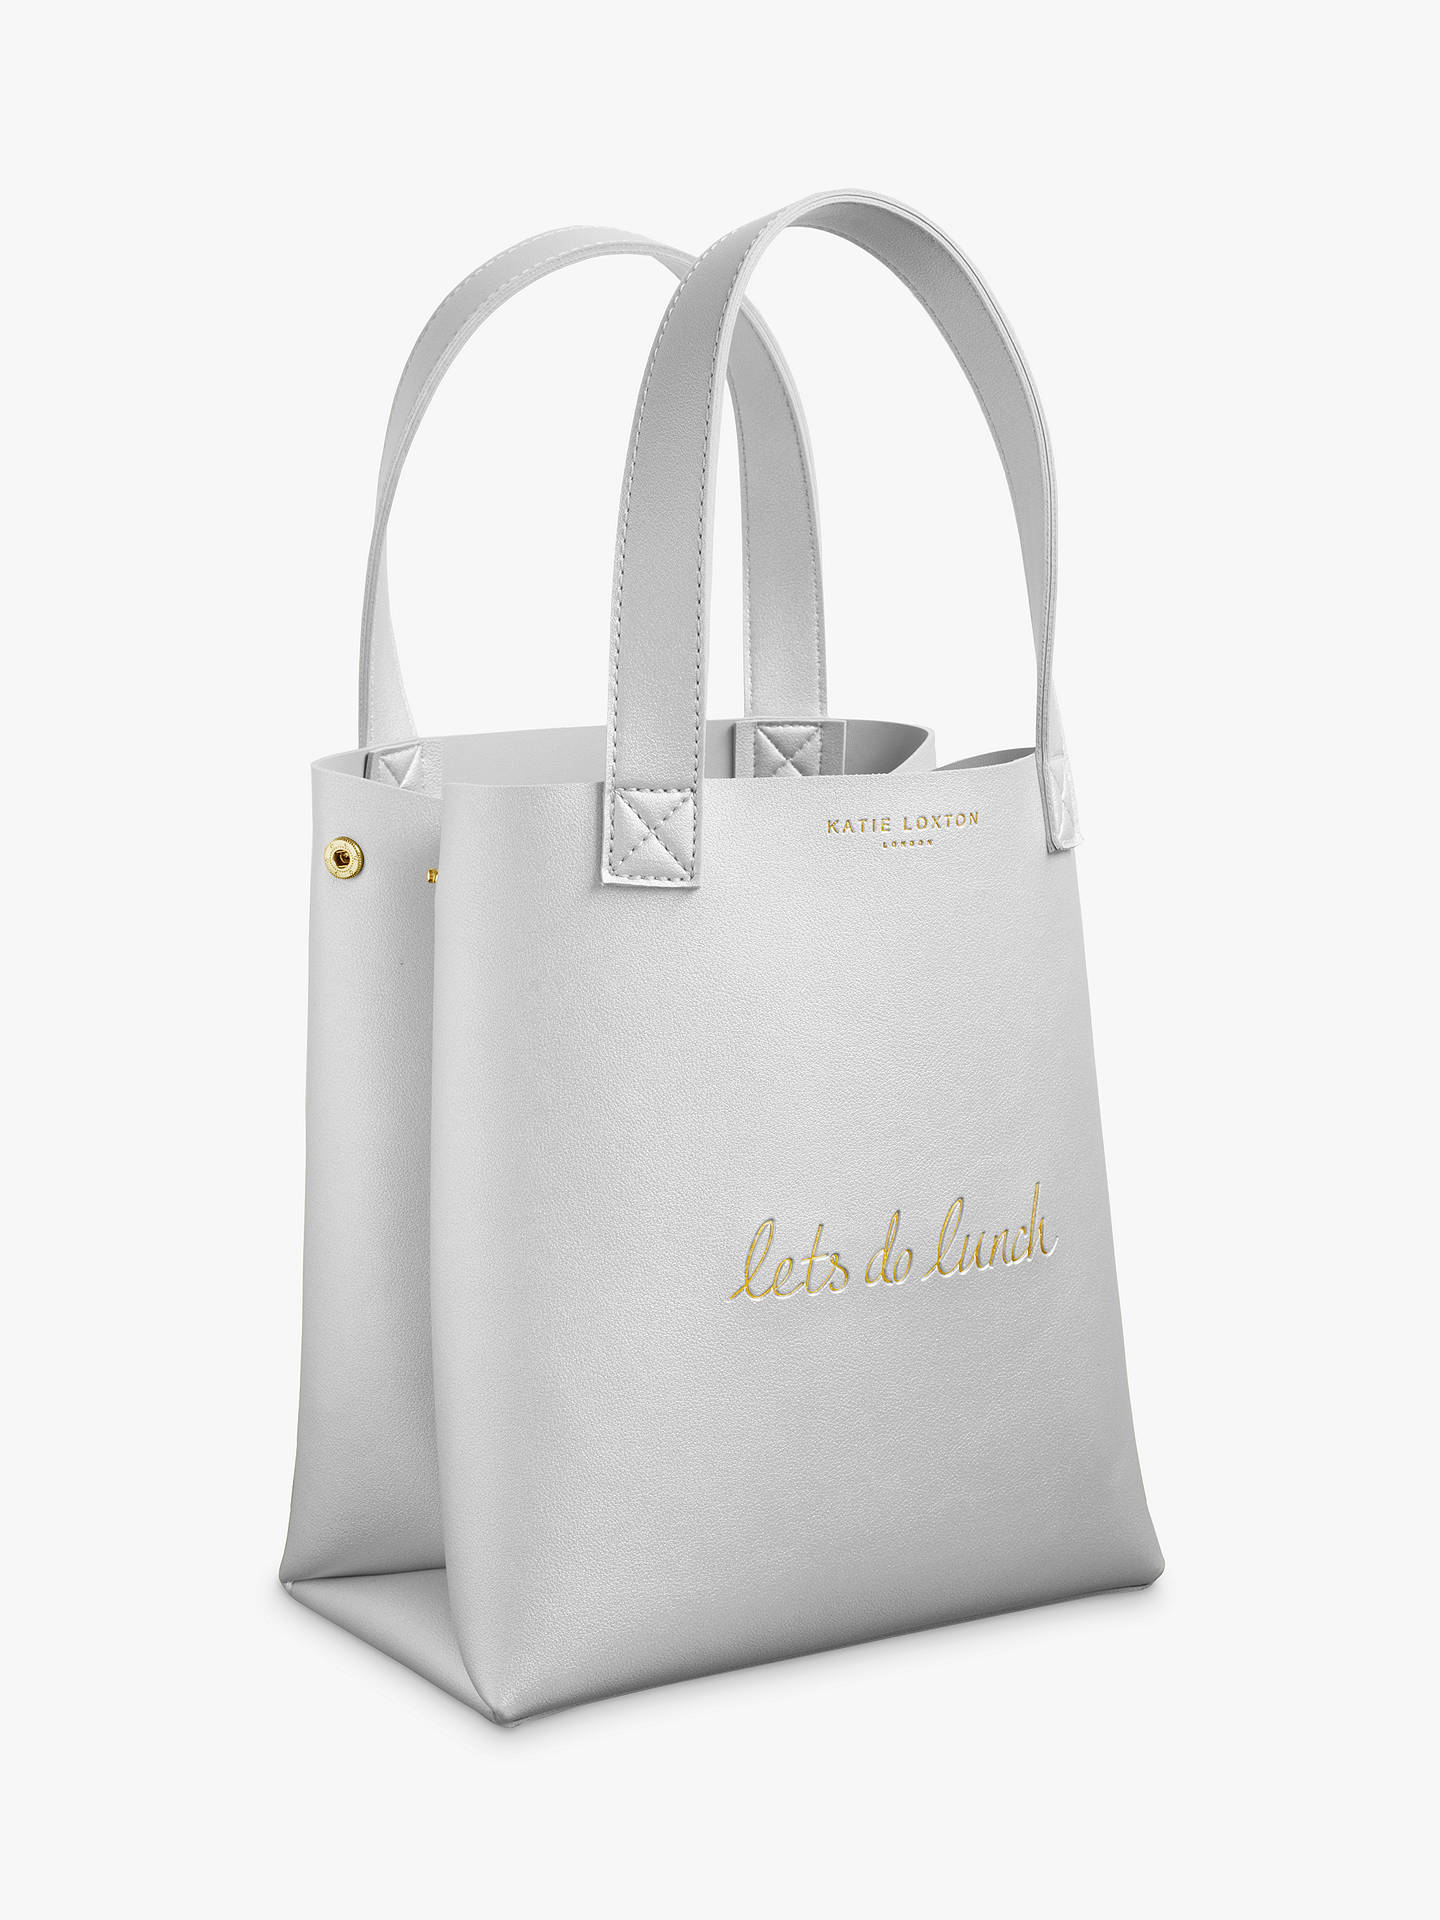 Katie Loxton Lets Do Lunch Bag Online At Johnlewis